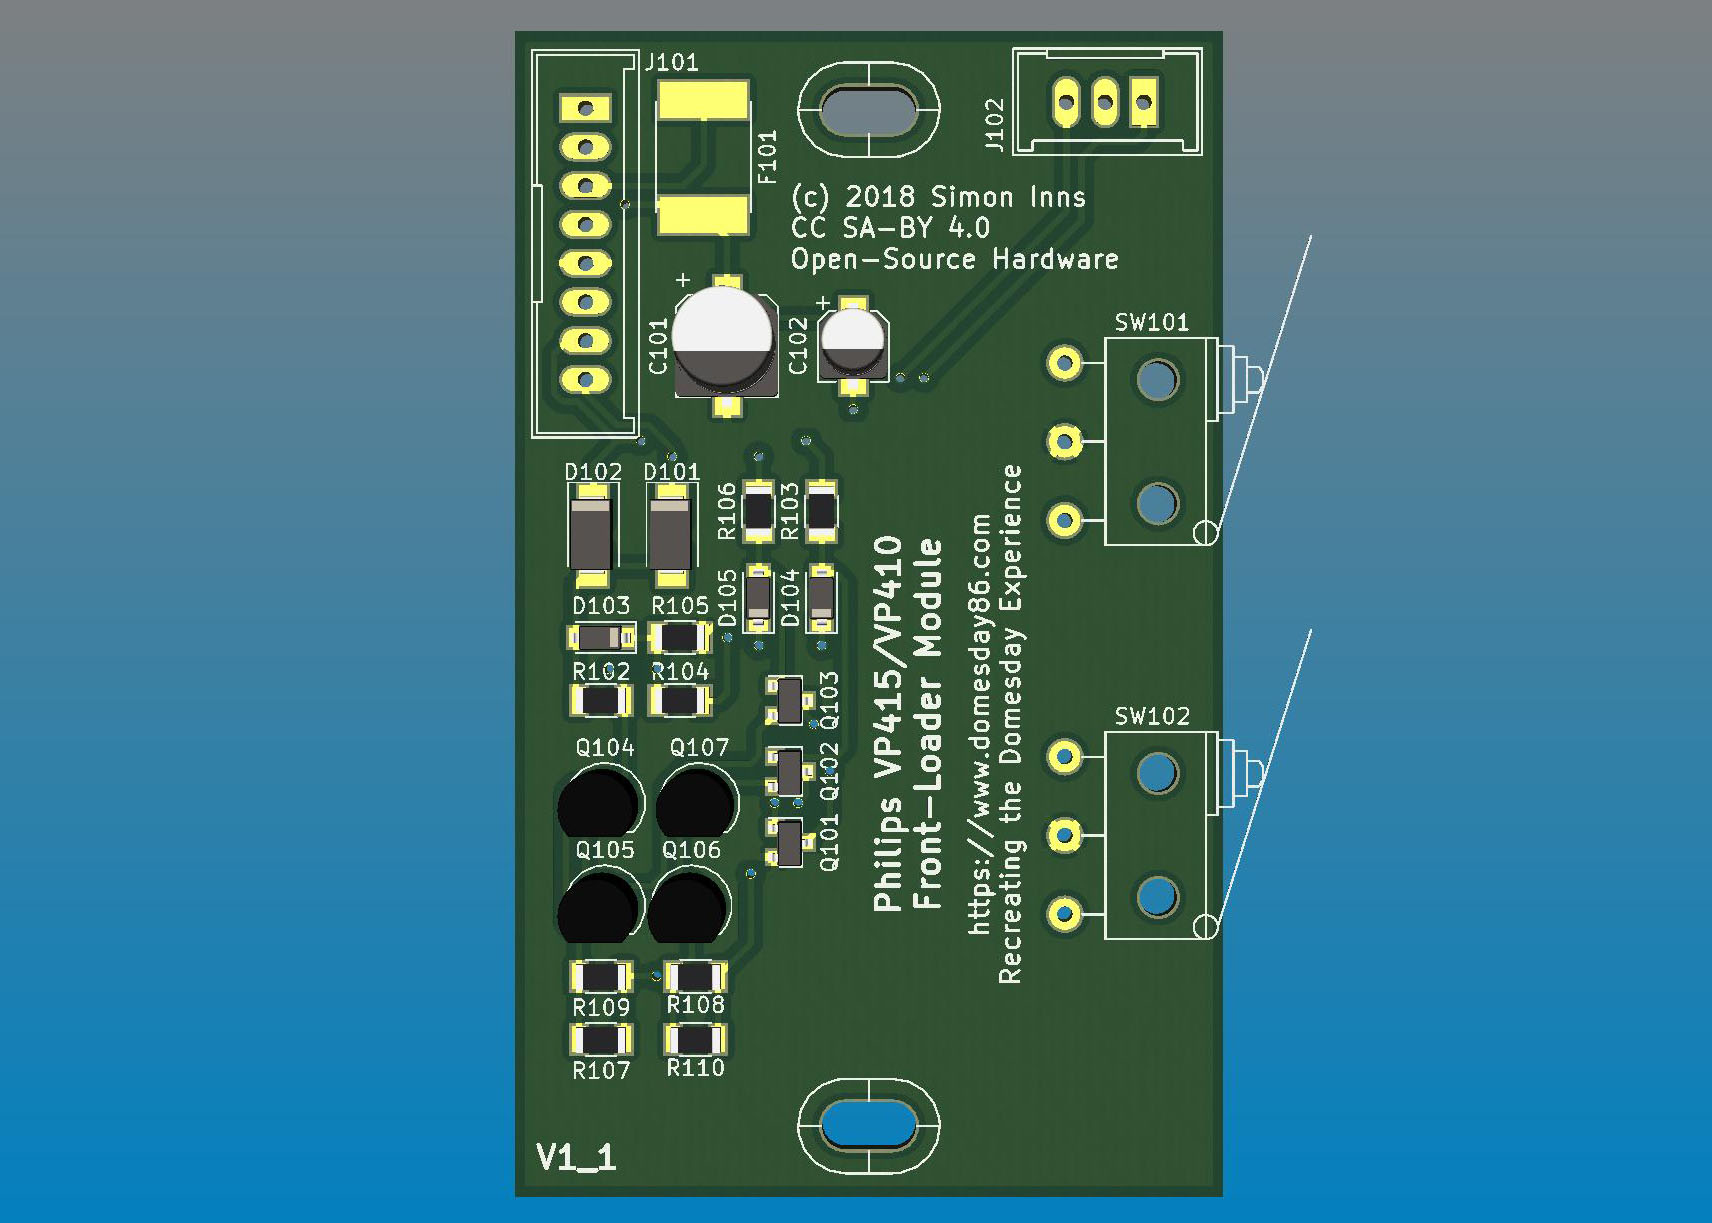 Philips Vp415 Vp410 Front Loader Module Replacement Main Board Display Schematic Circuit Diagram Pcb Top